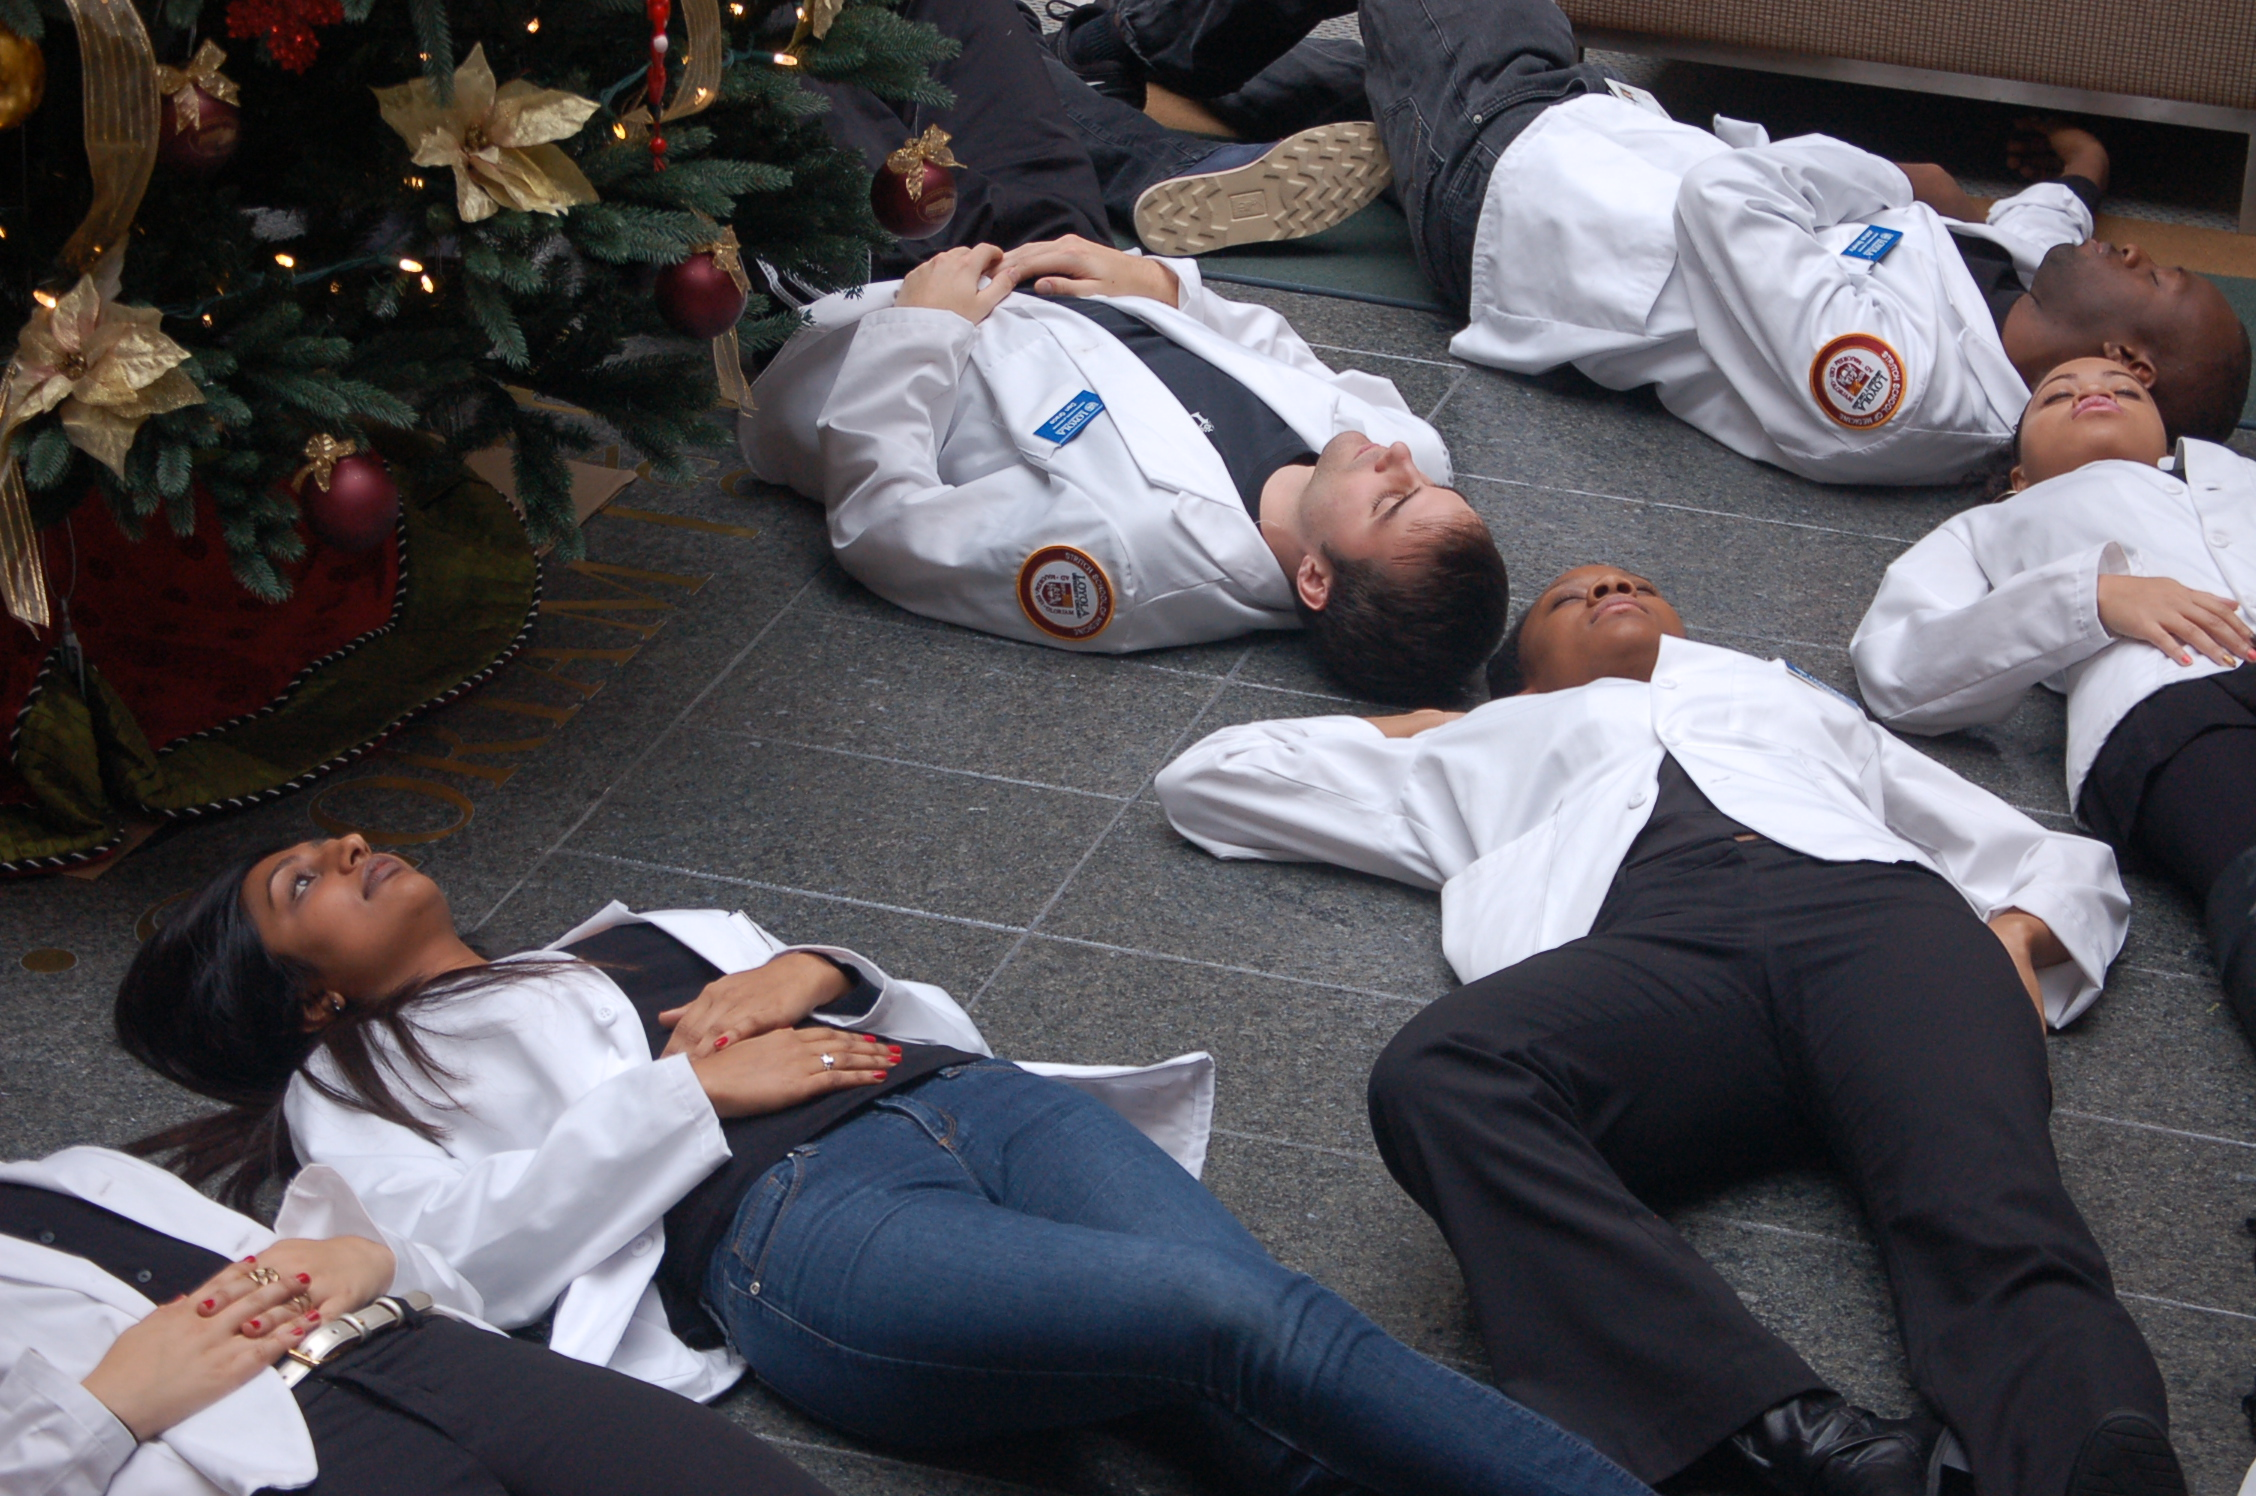 White Coats for Black Lives: Loyola Med Students Stage 'Die-in' in ...